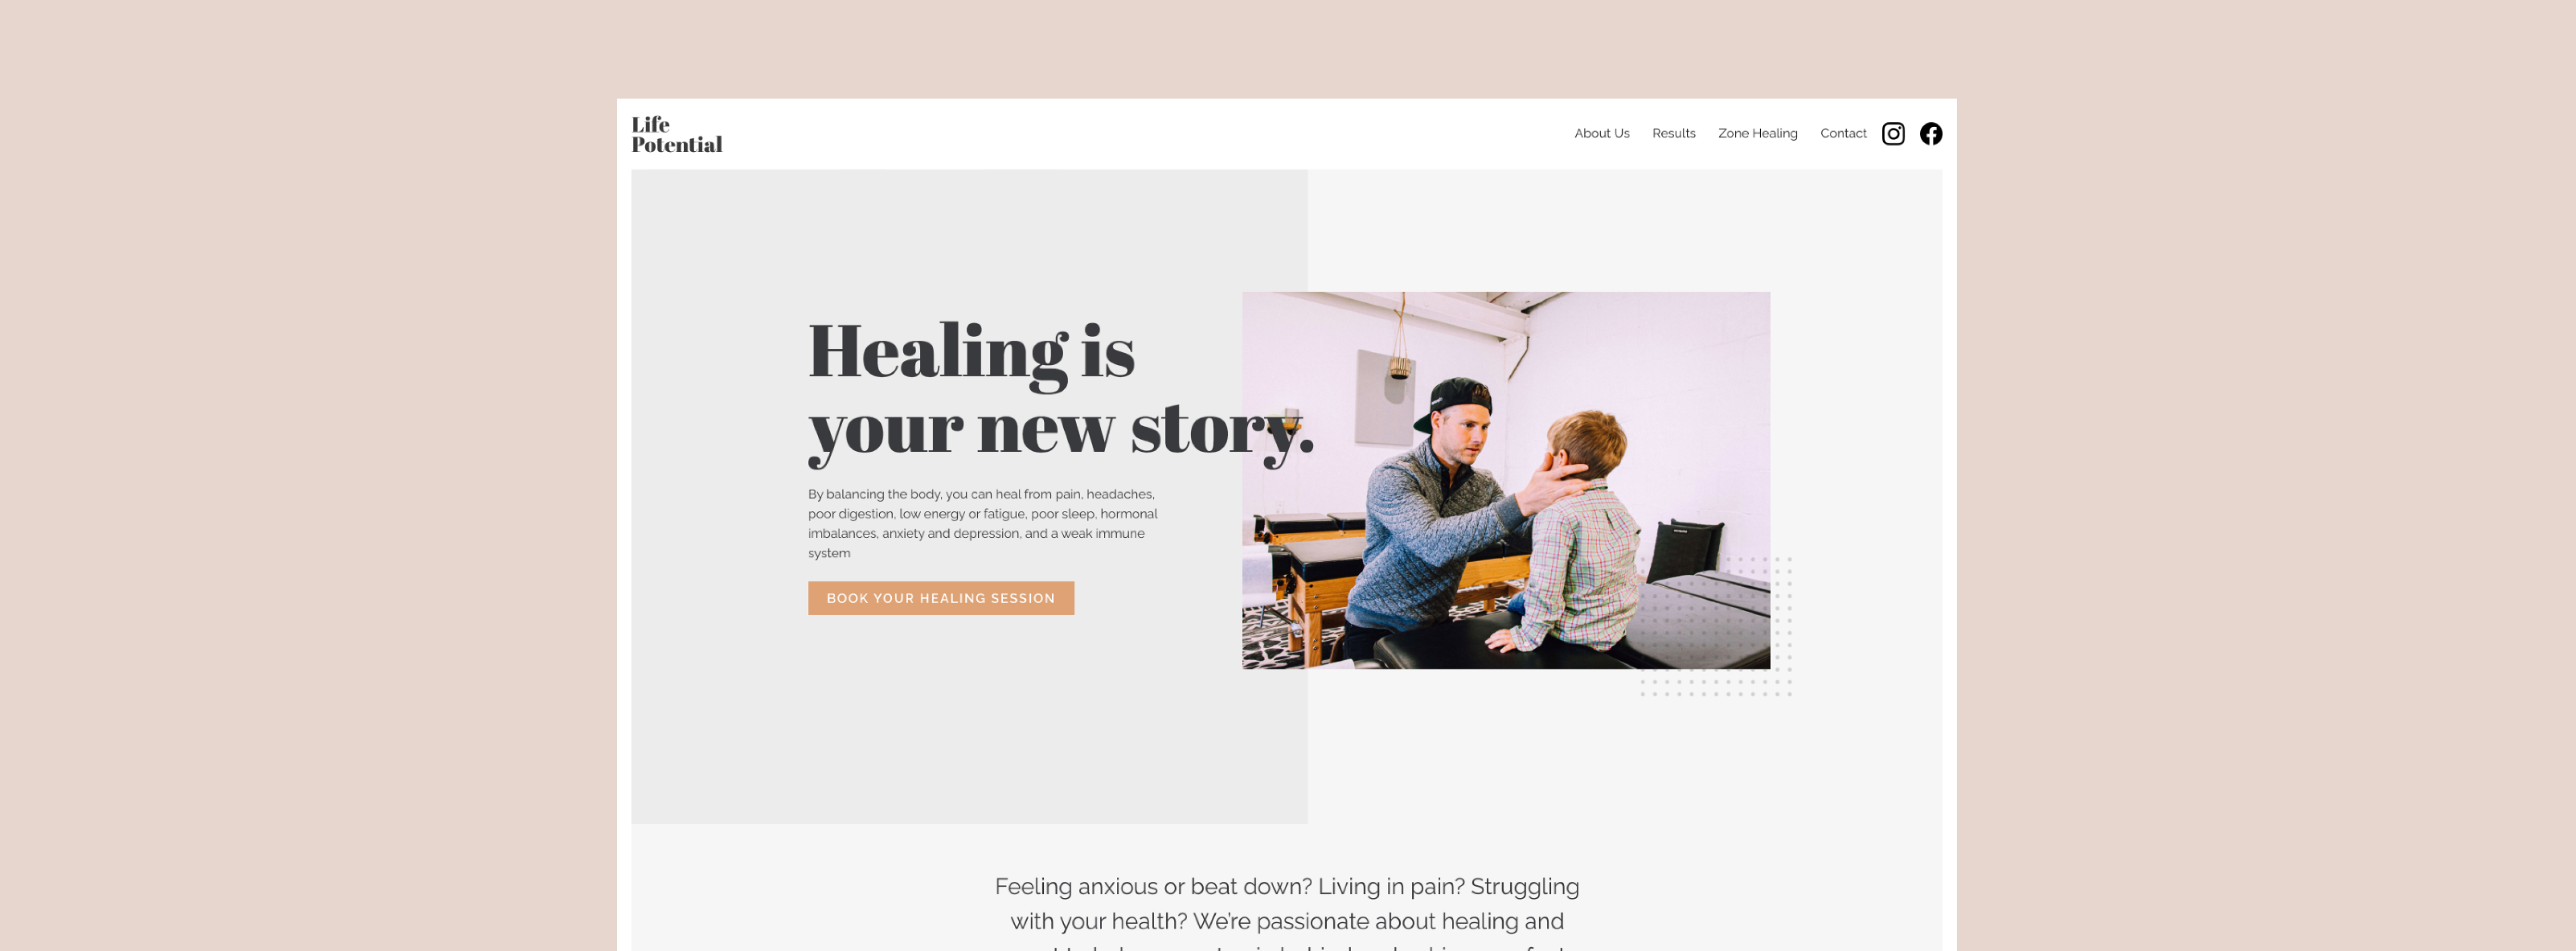 """Life Potential home page that says """"Healing is your new story"""""""